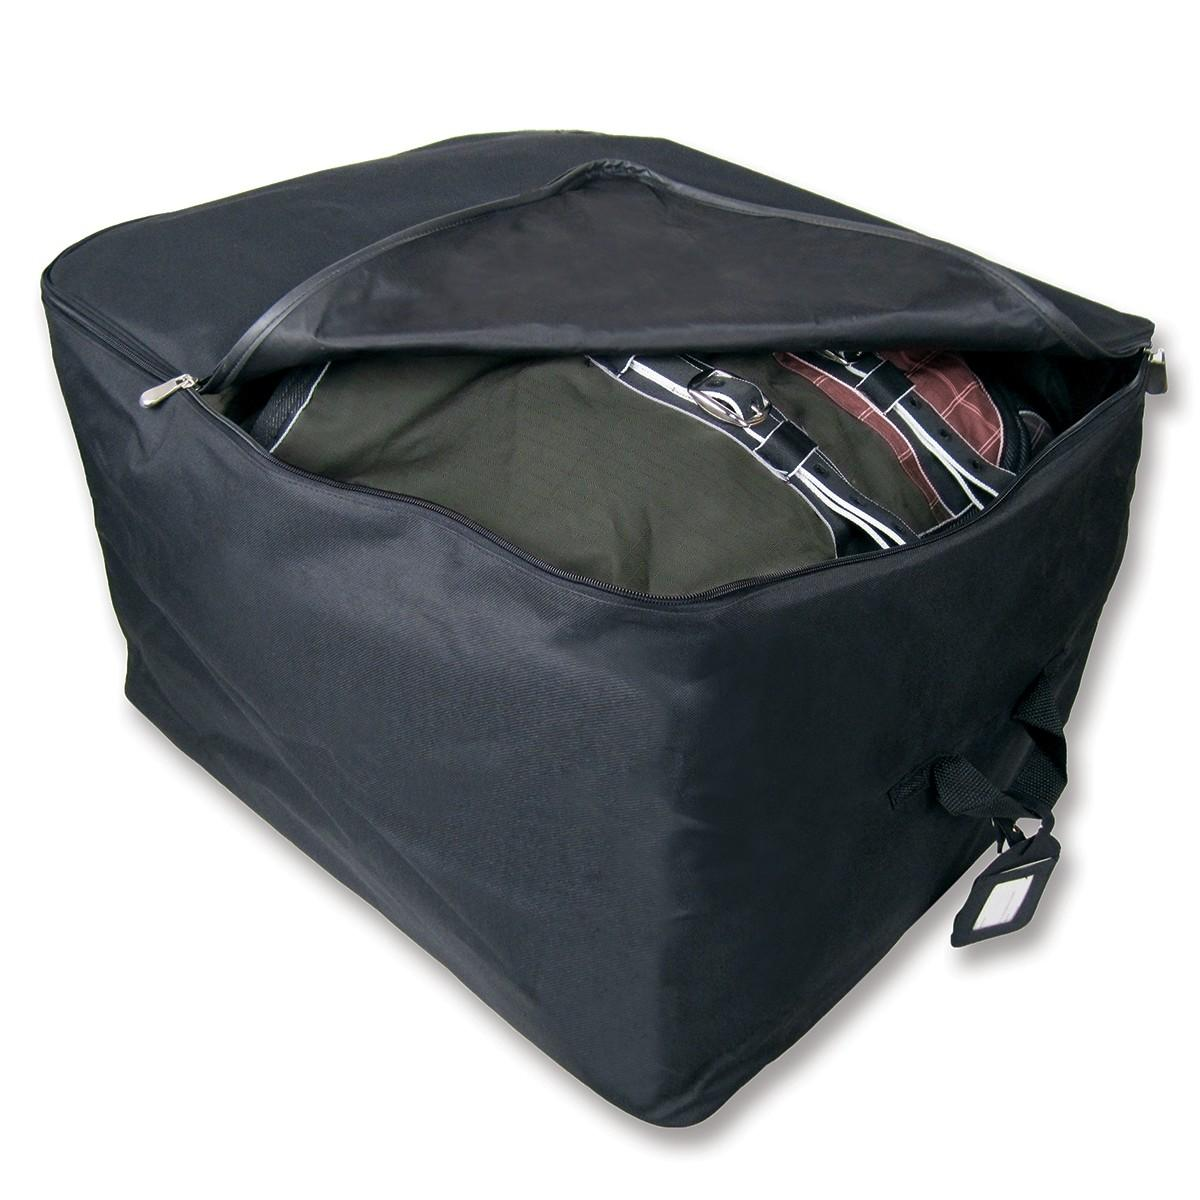 Simple Black Blanket Storage Bags Ideas